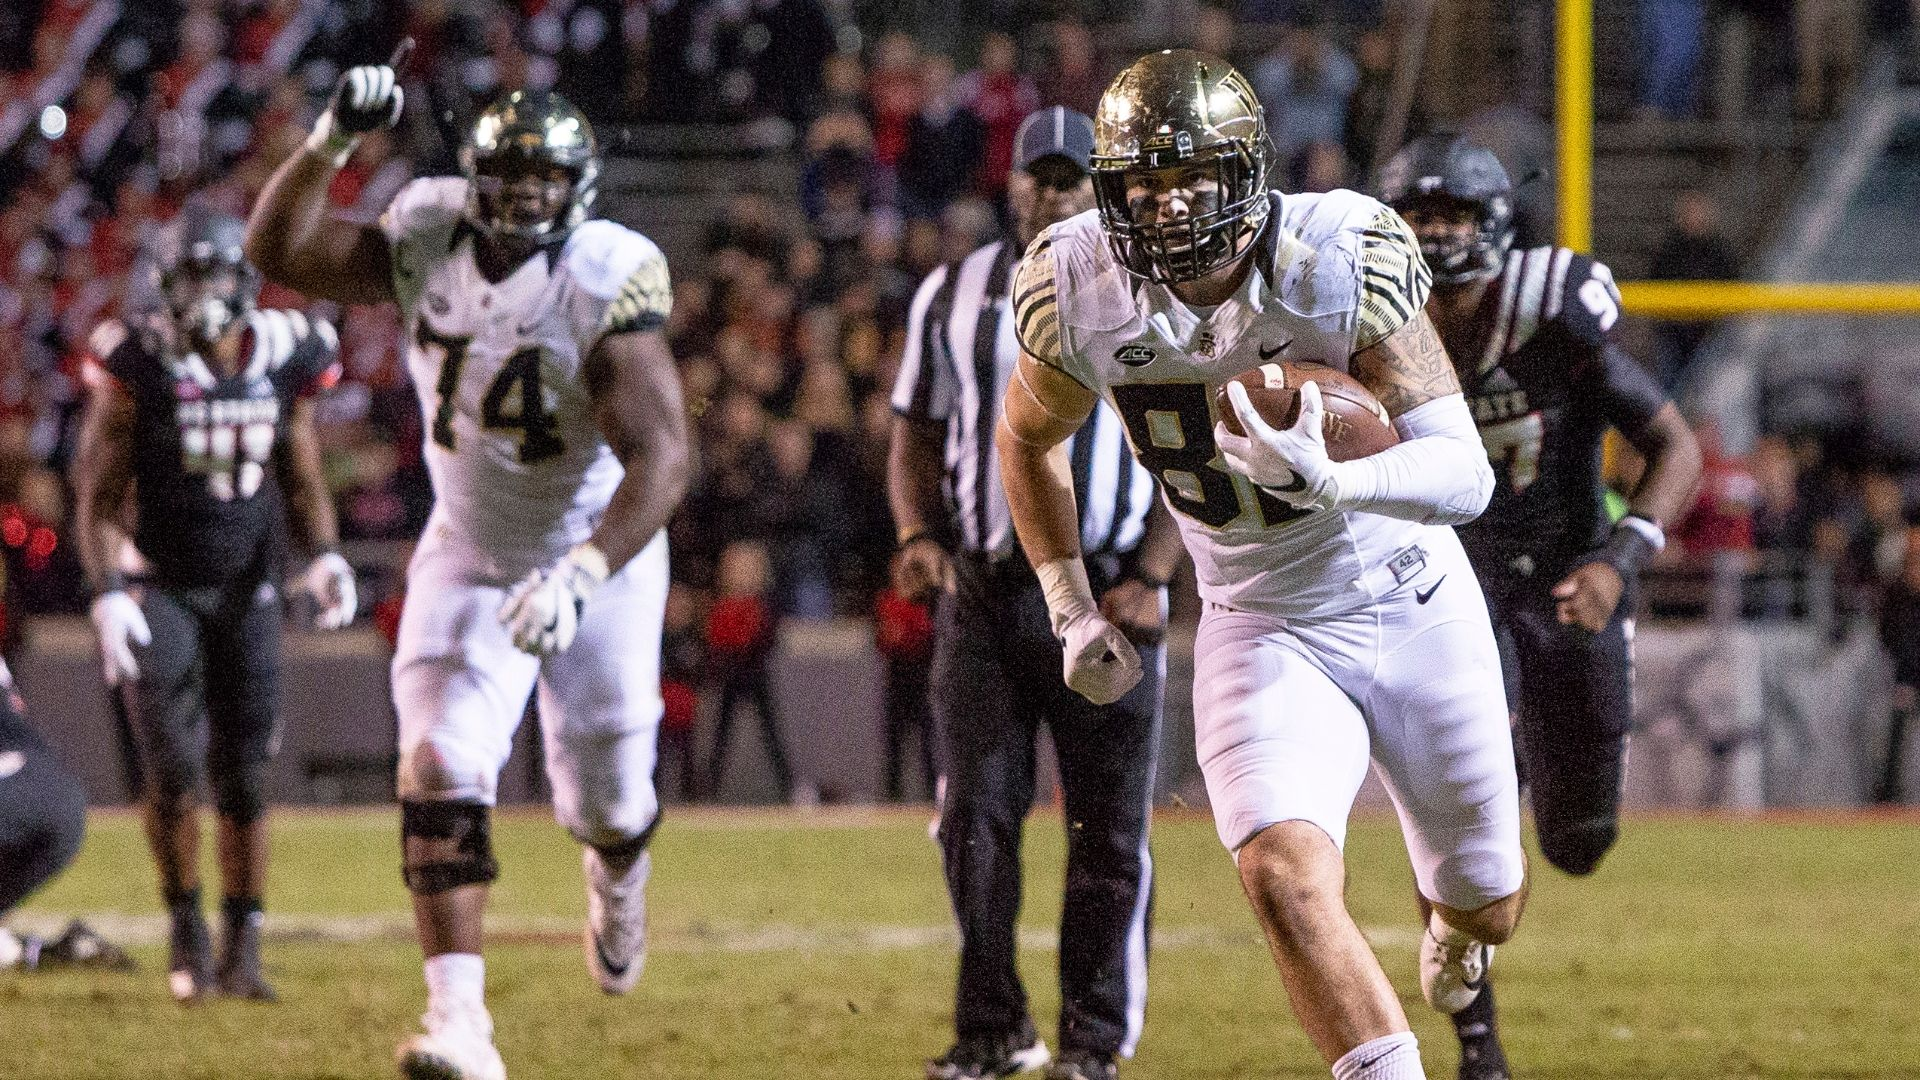 https://secure.espncdn.com/combiner/i?img=/media/motion/2018/1108/dm_181108_NCF_One_Play_TEs_late_TD_sends_Wake_Forest_to_upset_win_of_NC_State/dm_181108_NCF_One_Play_TEs_late_TD_sends_Wake_Forest_to_upset_win_of_NC_State.jpg